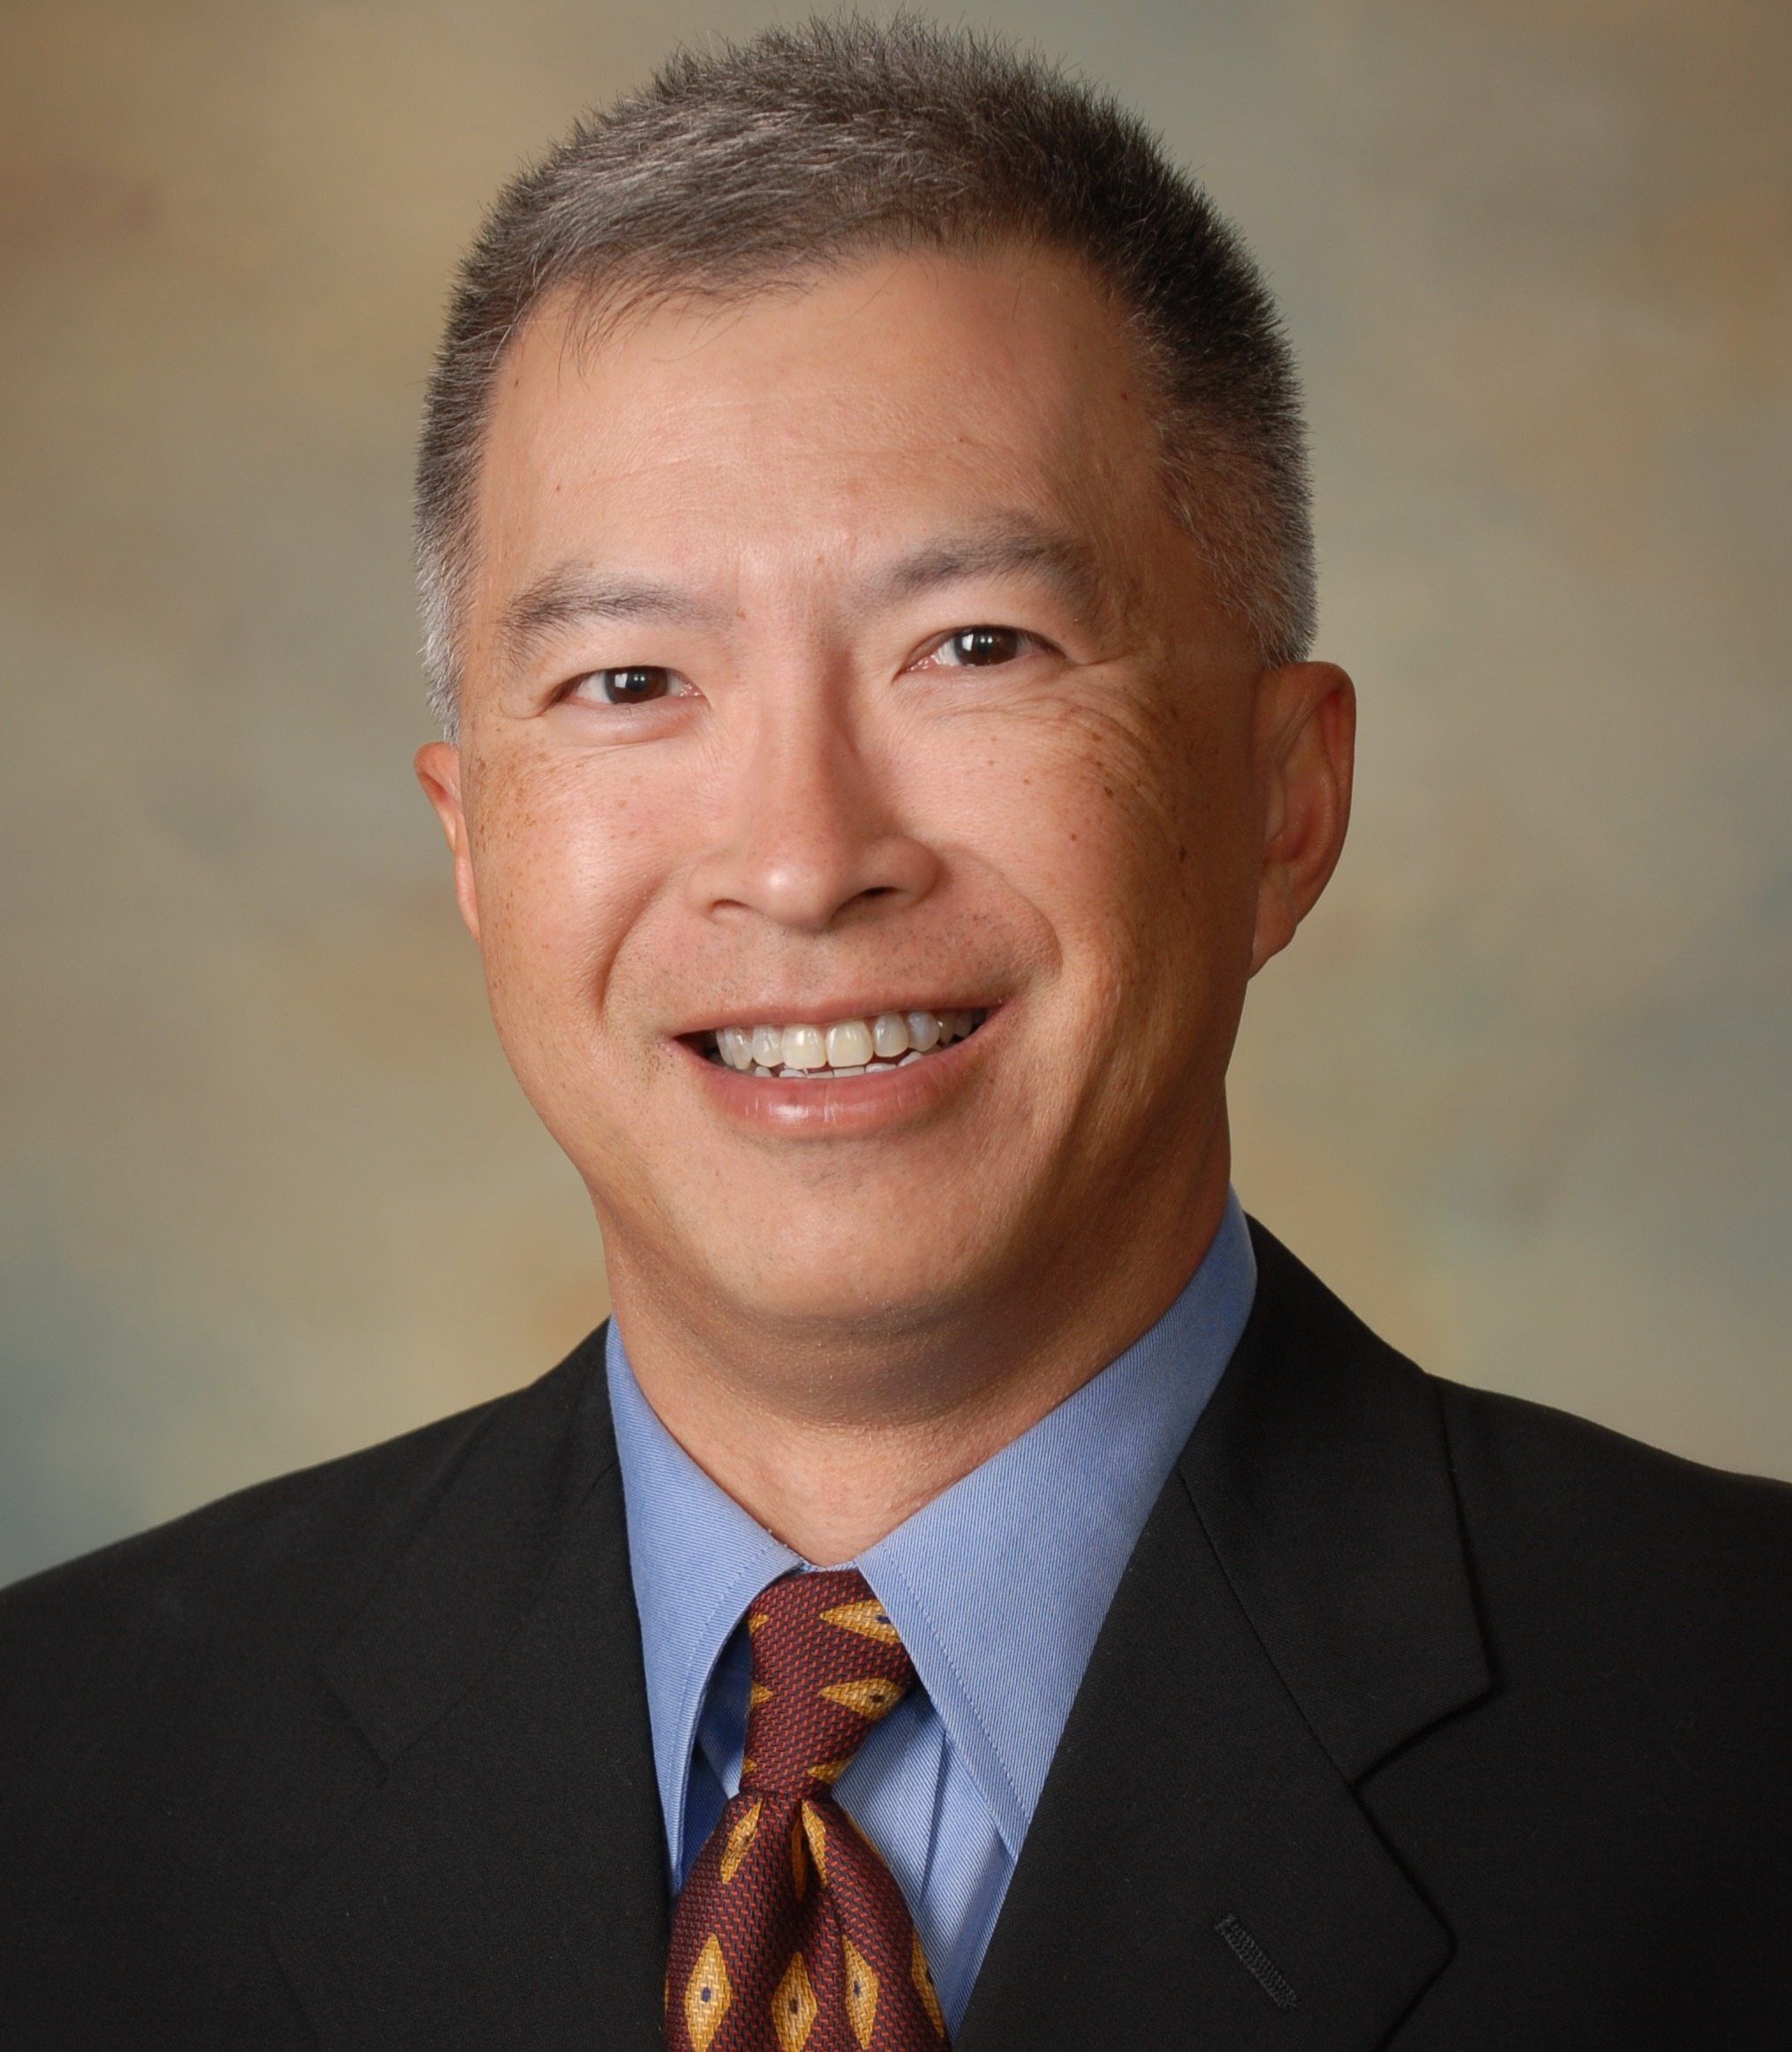 Howard P Tay, FACS, MD